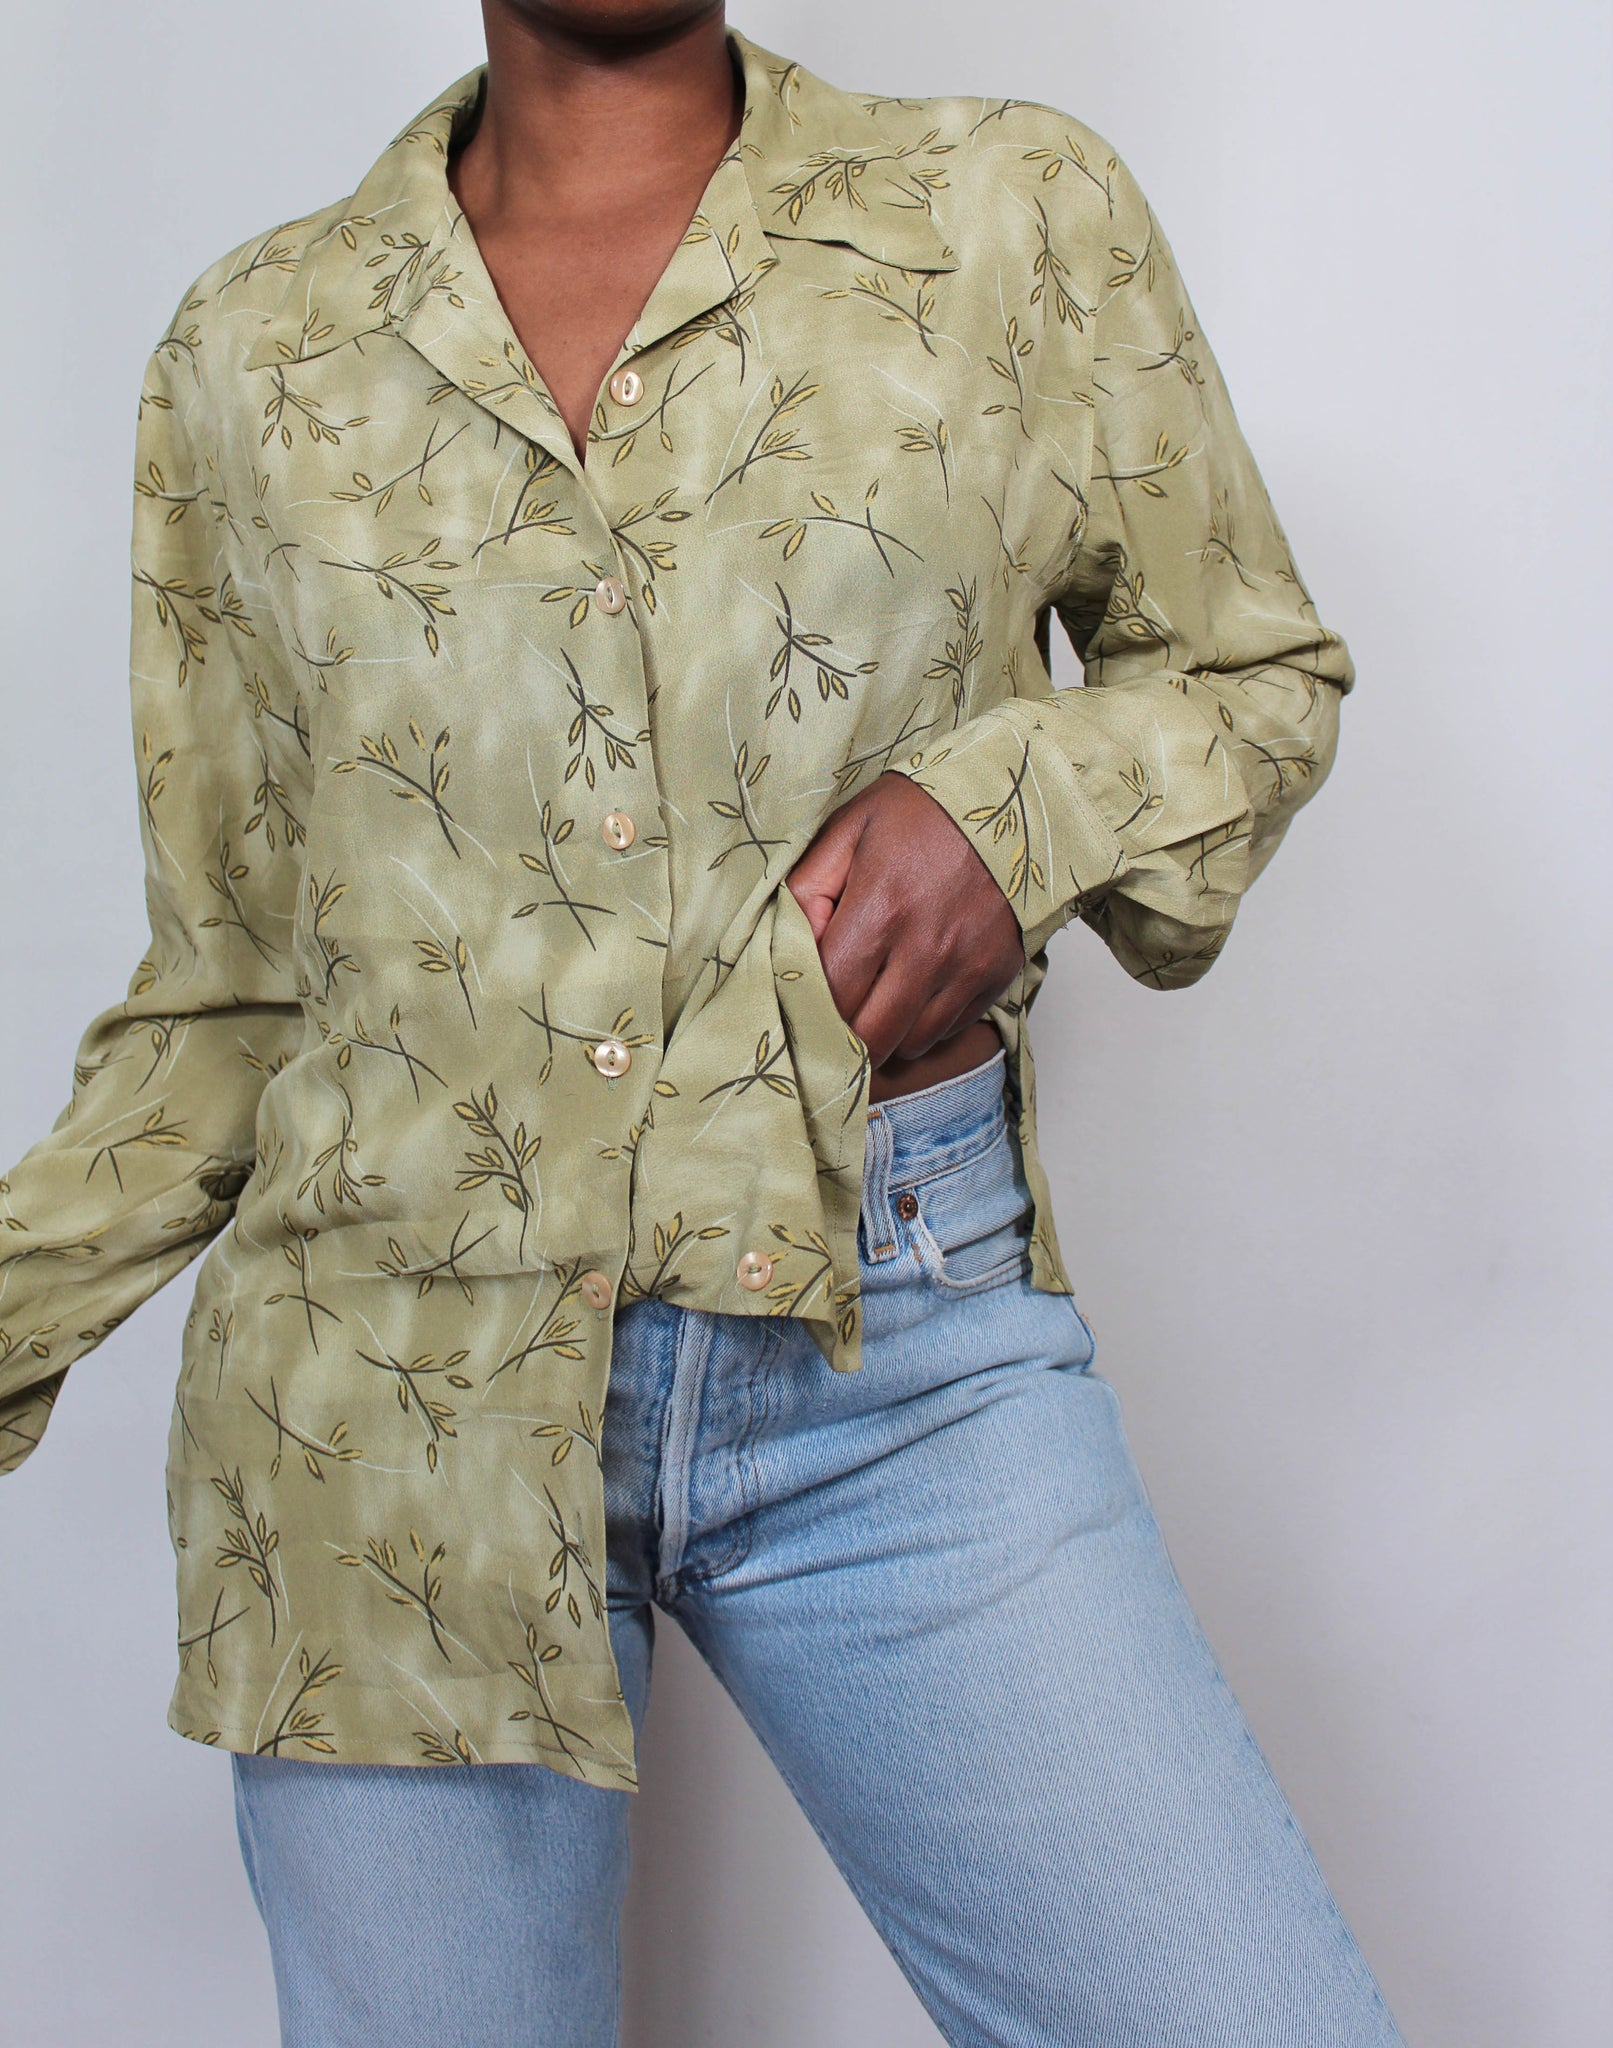 Vintage green blouse